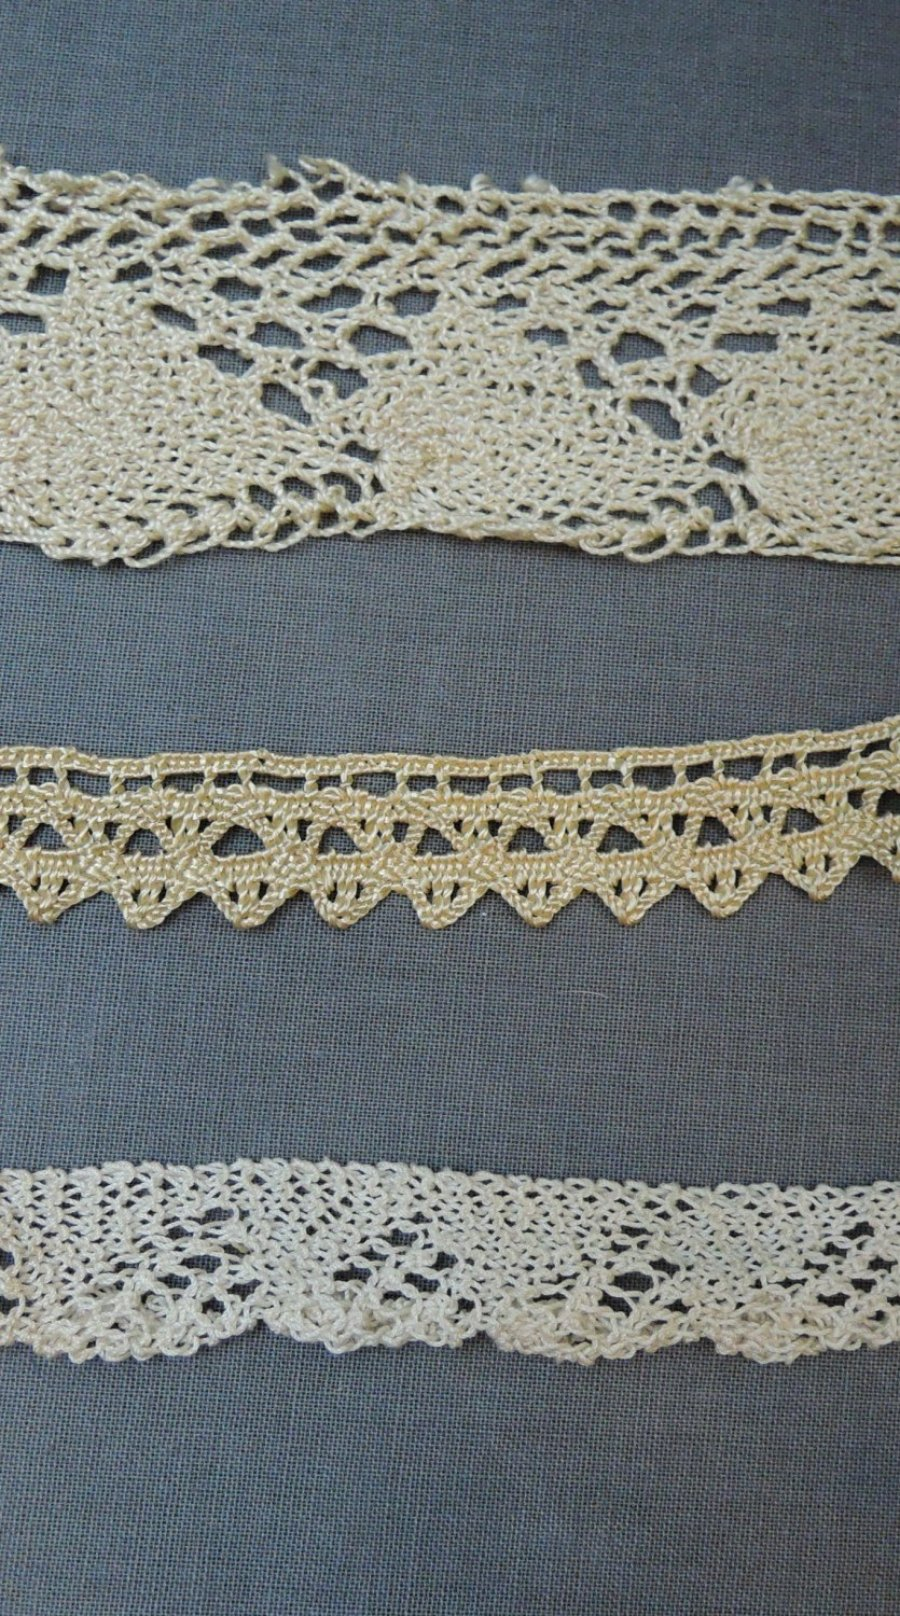 3 pieces of Vintage Crochet Lace Trim, Handmade Rayon and Cotton 1920s or earlier